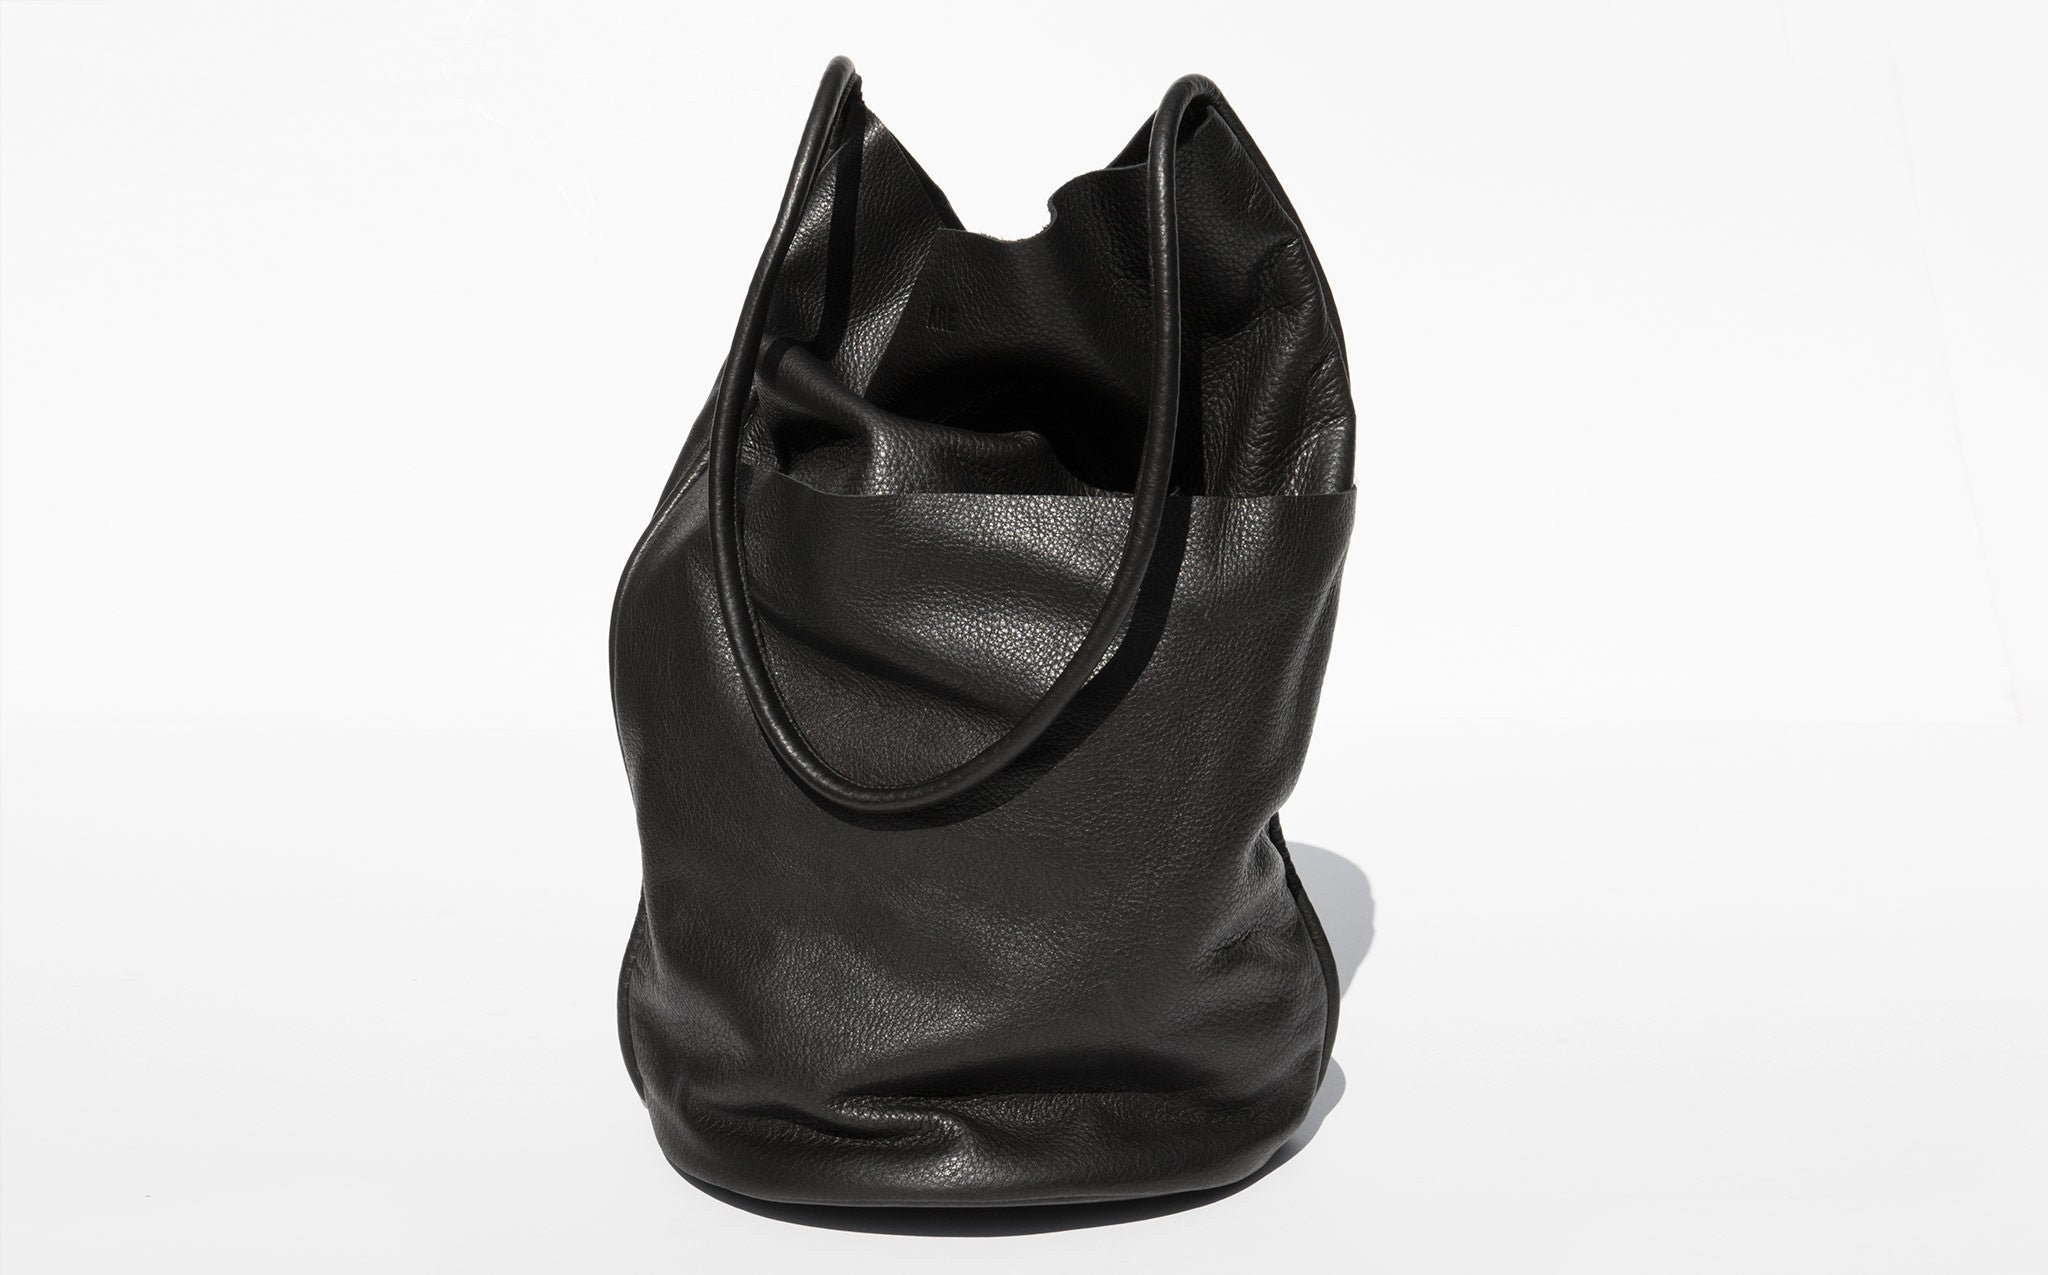 Are Studio Onyx Buoy Tote Bag